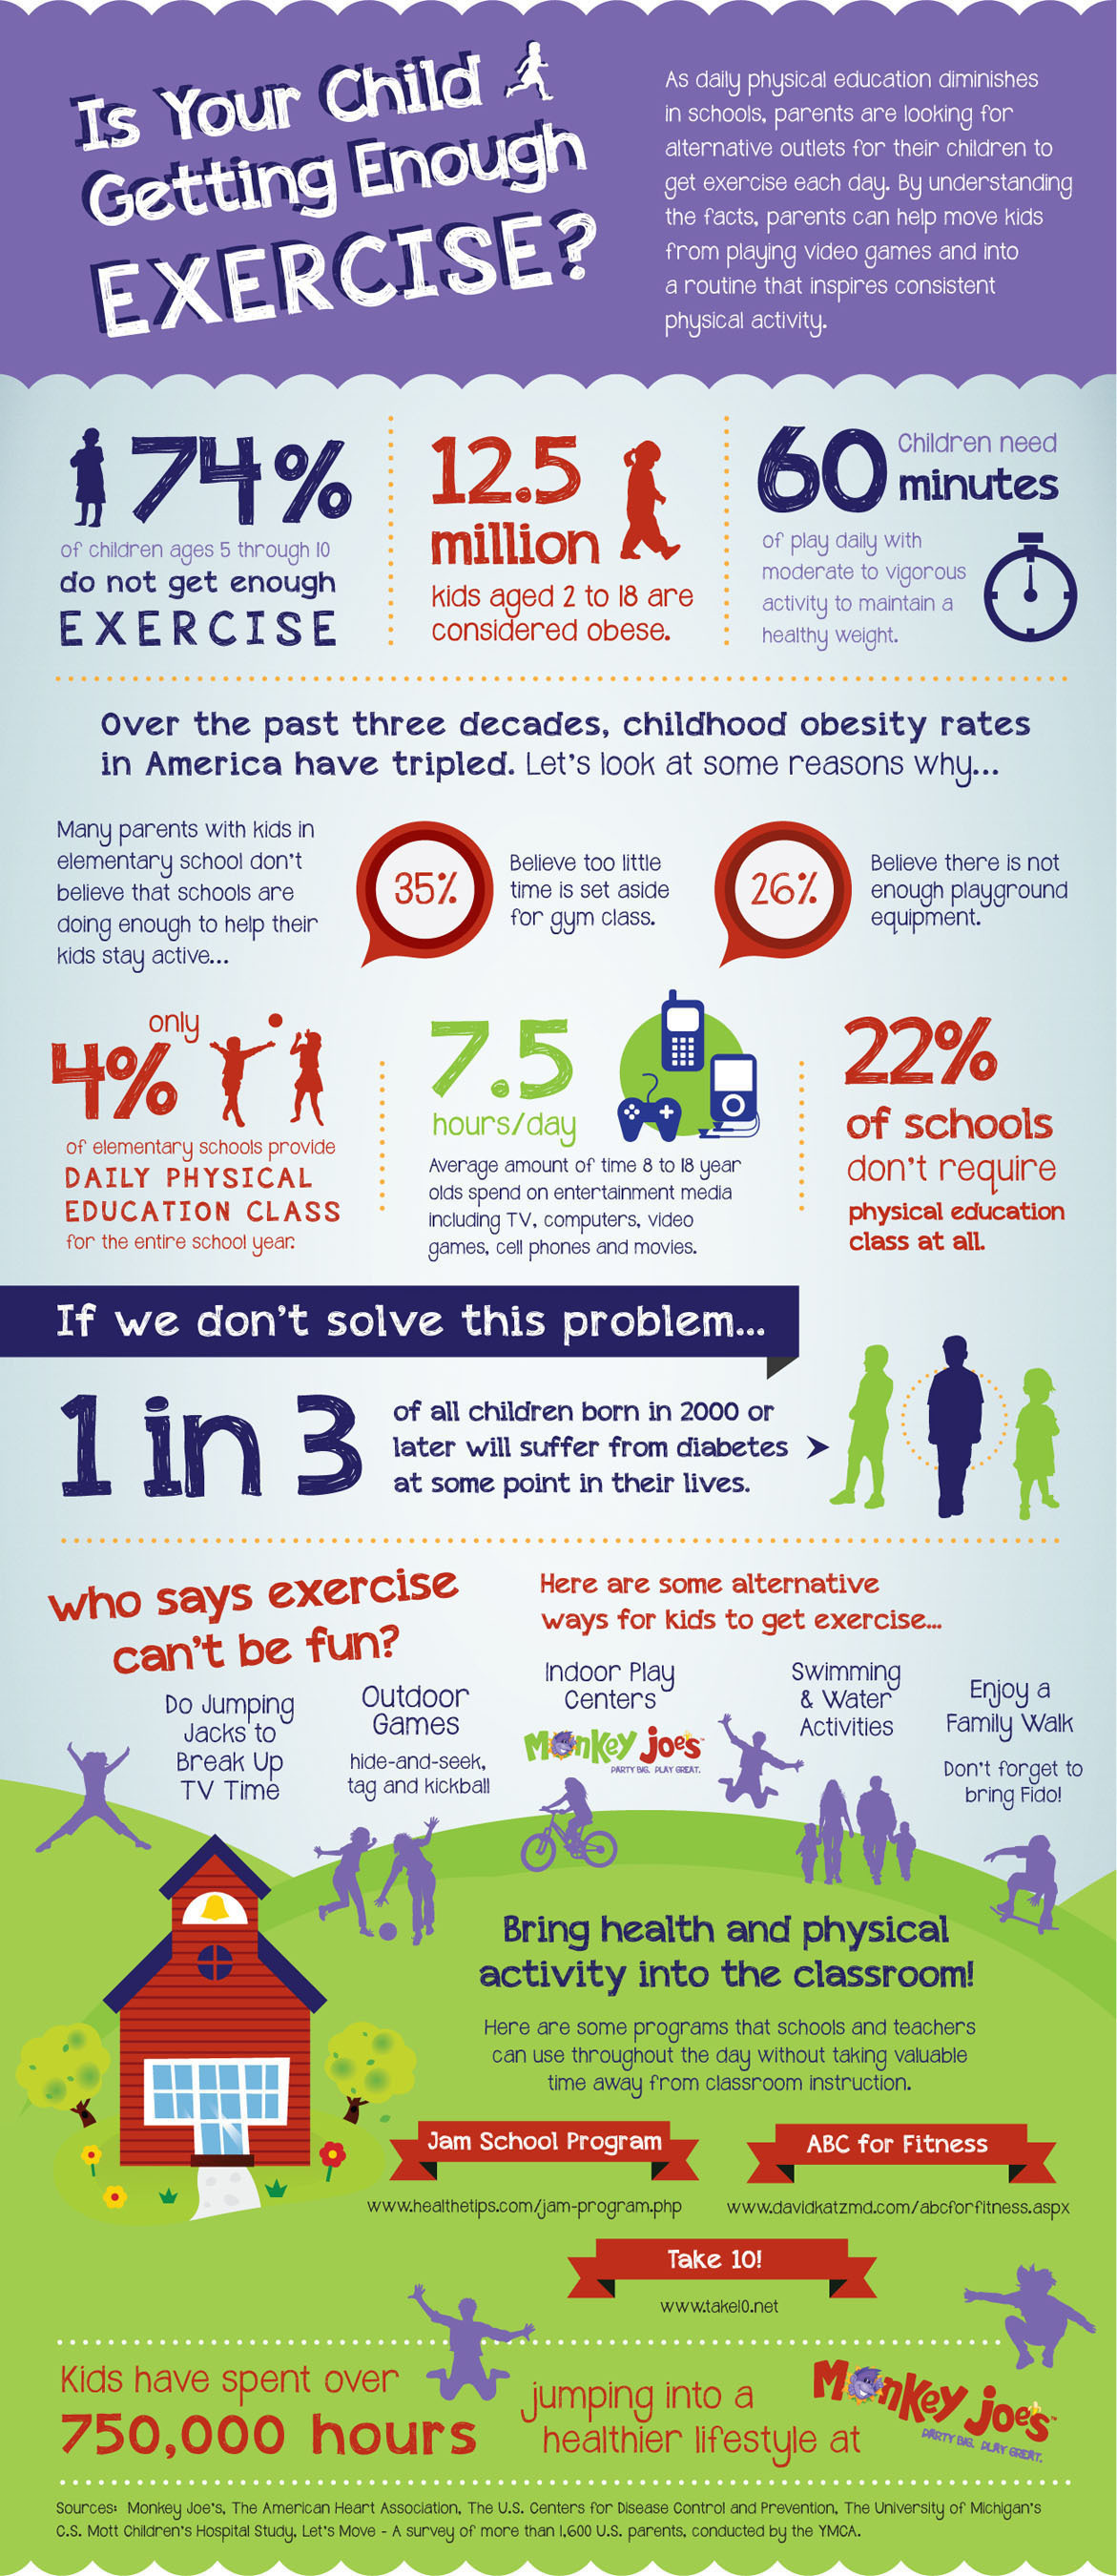 Is your child getting enough exercise?